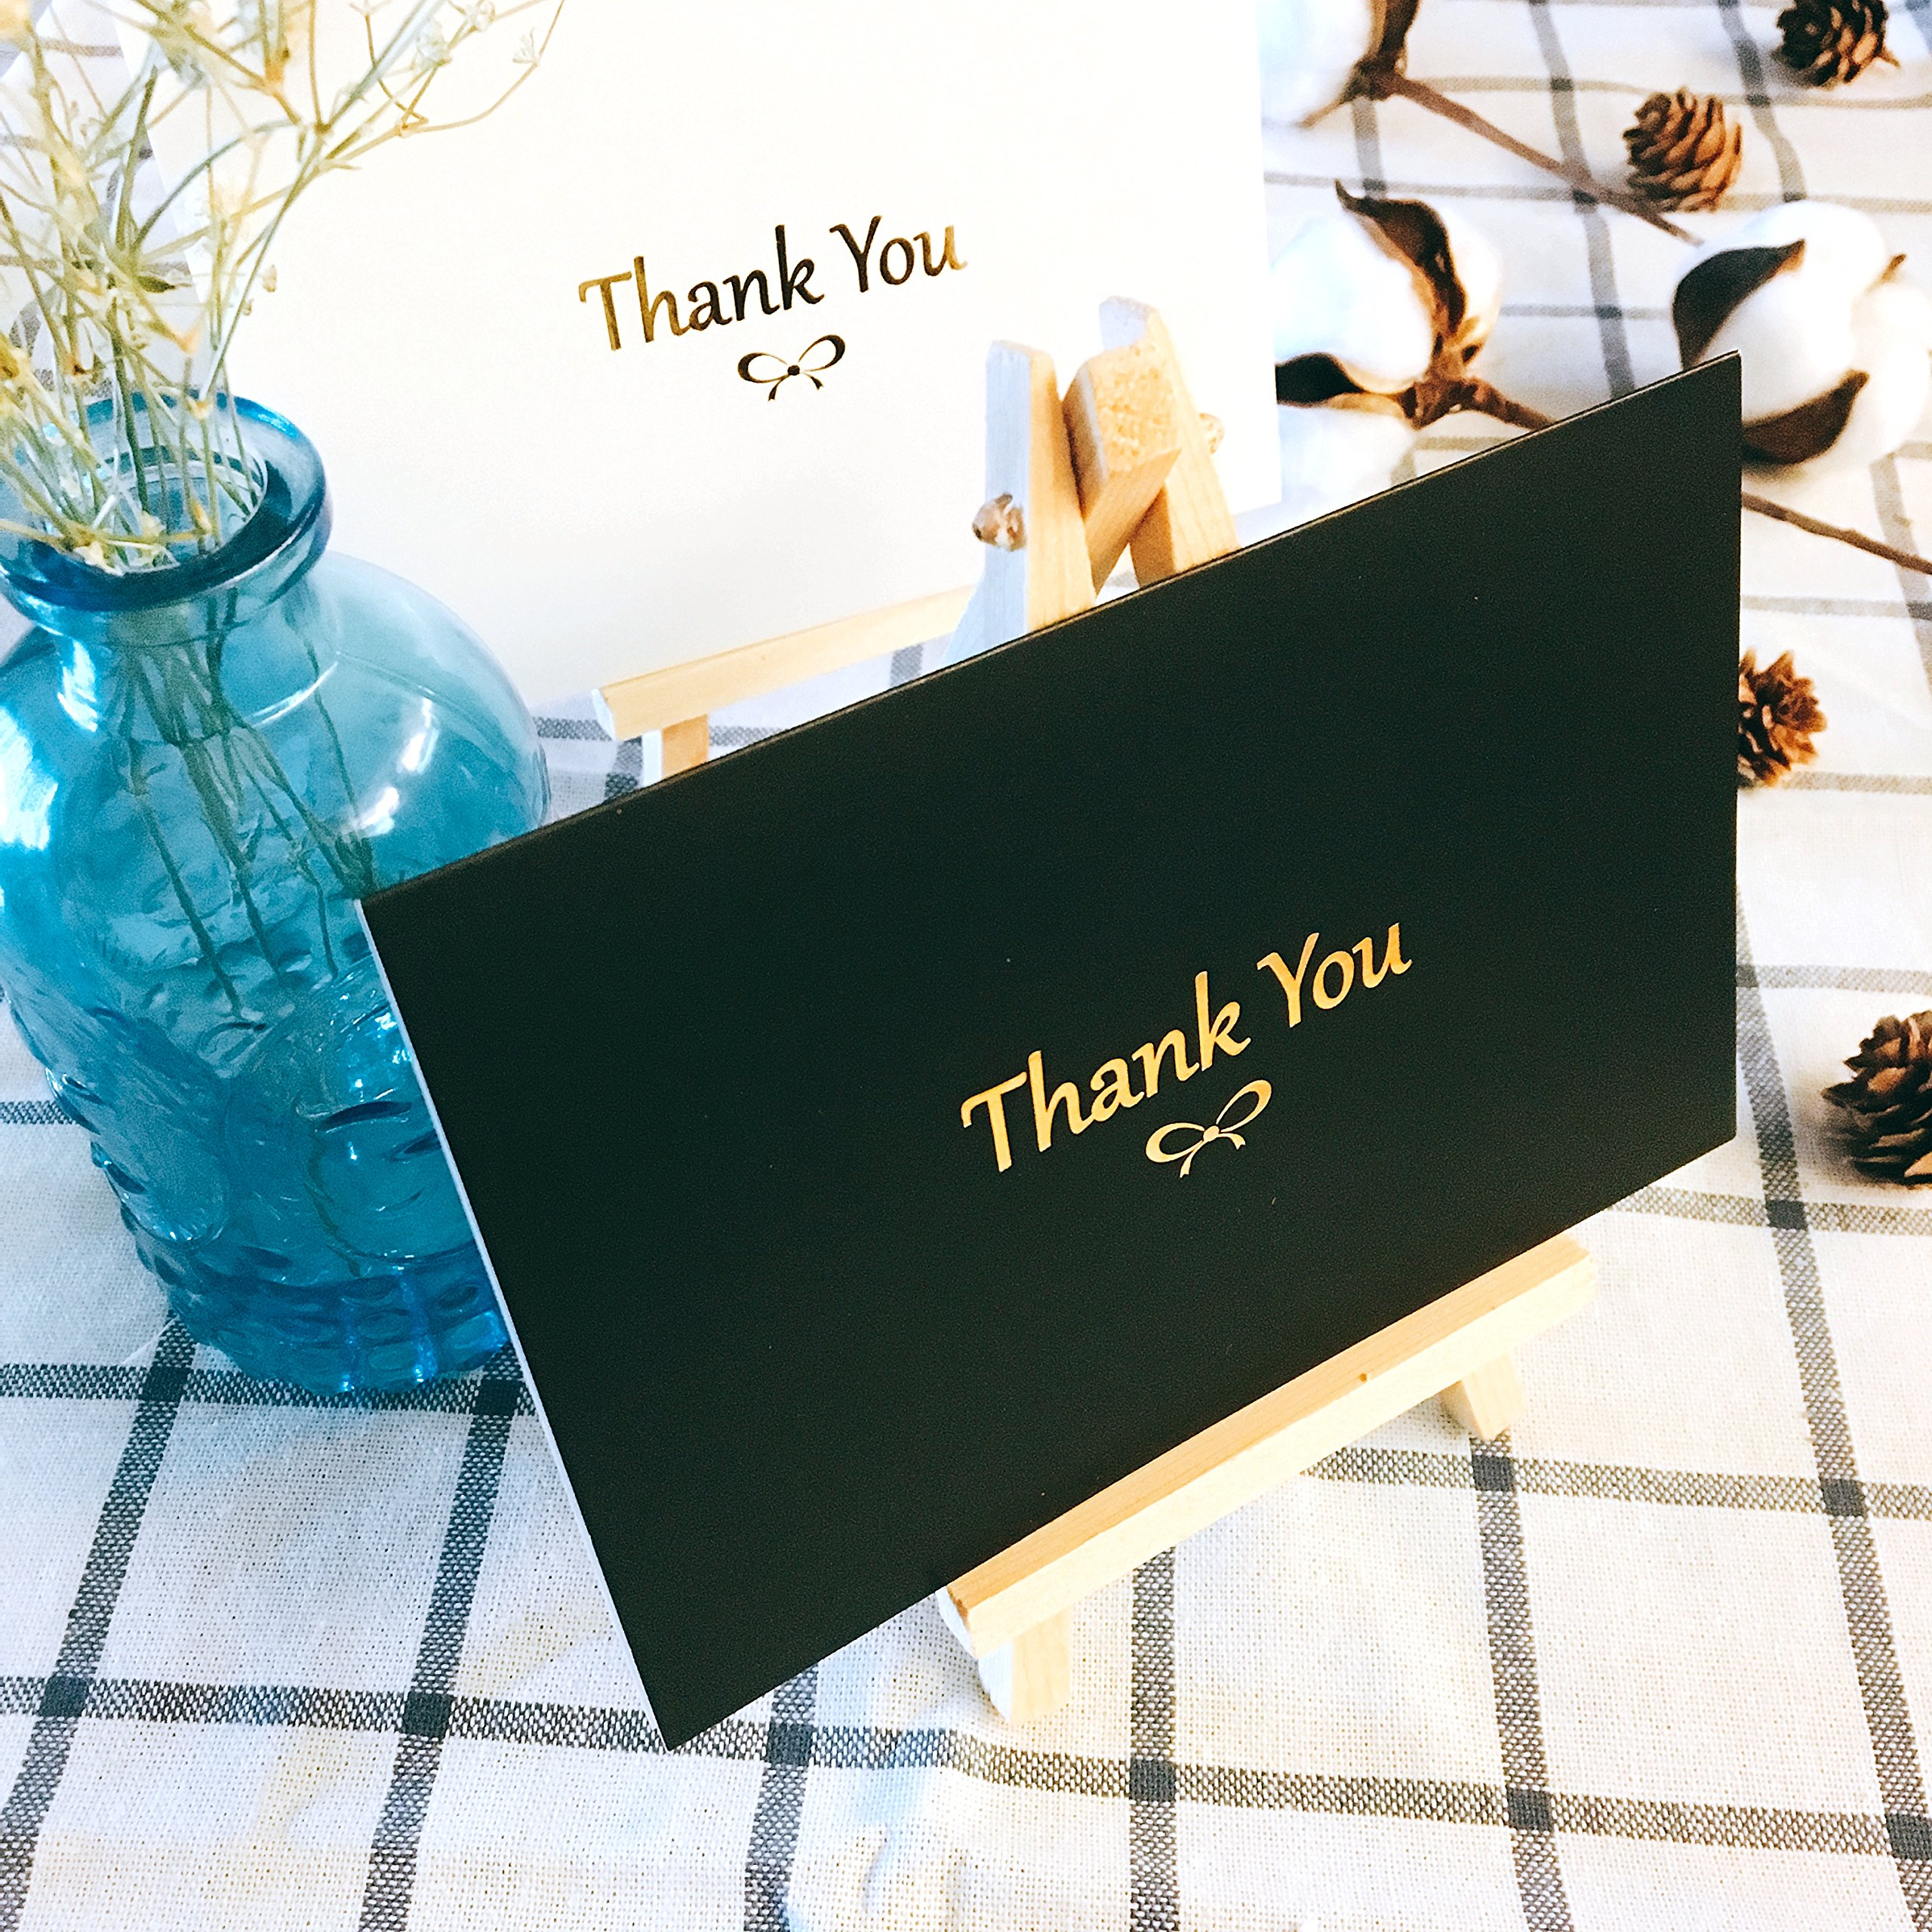 100 Thank You Cards With Gold Foil Embossed Designs | 4 x 6 Inches, Bulk Blank Note Cards With Envelopes And Gold Stickers | Perfect For Wedding, Bridal Shower, Baby Shower, and Business (Black White) by Winoo Paper Greetings (Image #3)